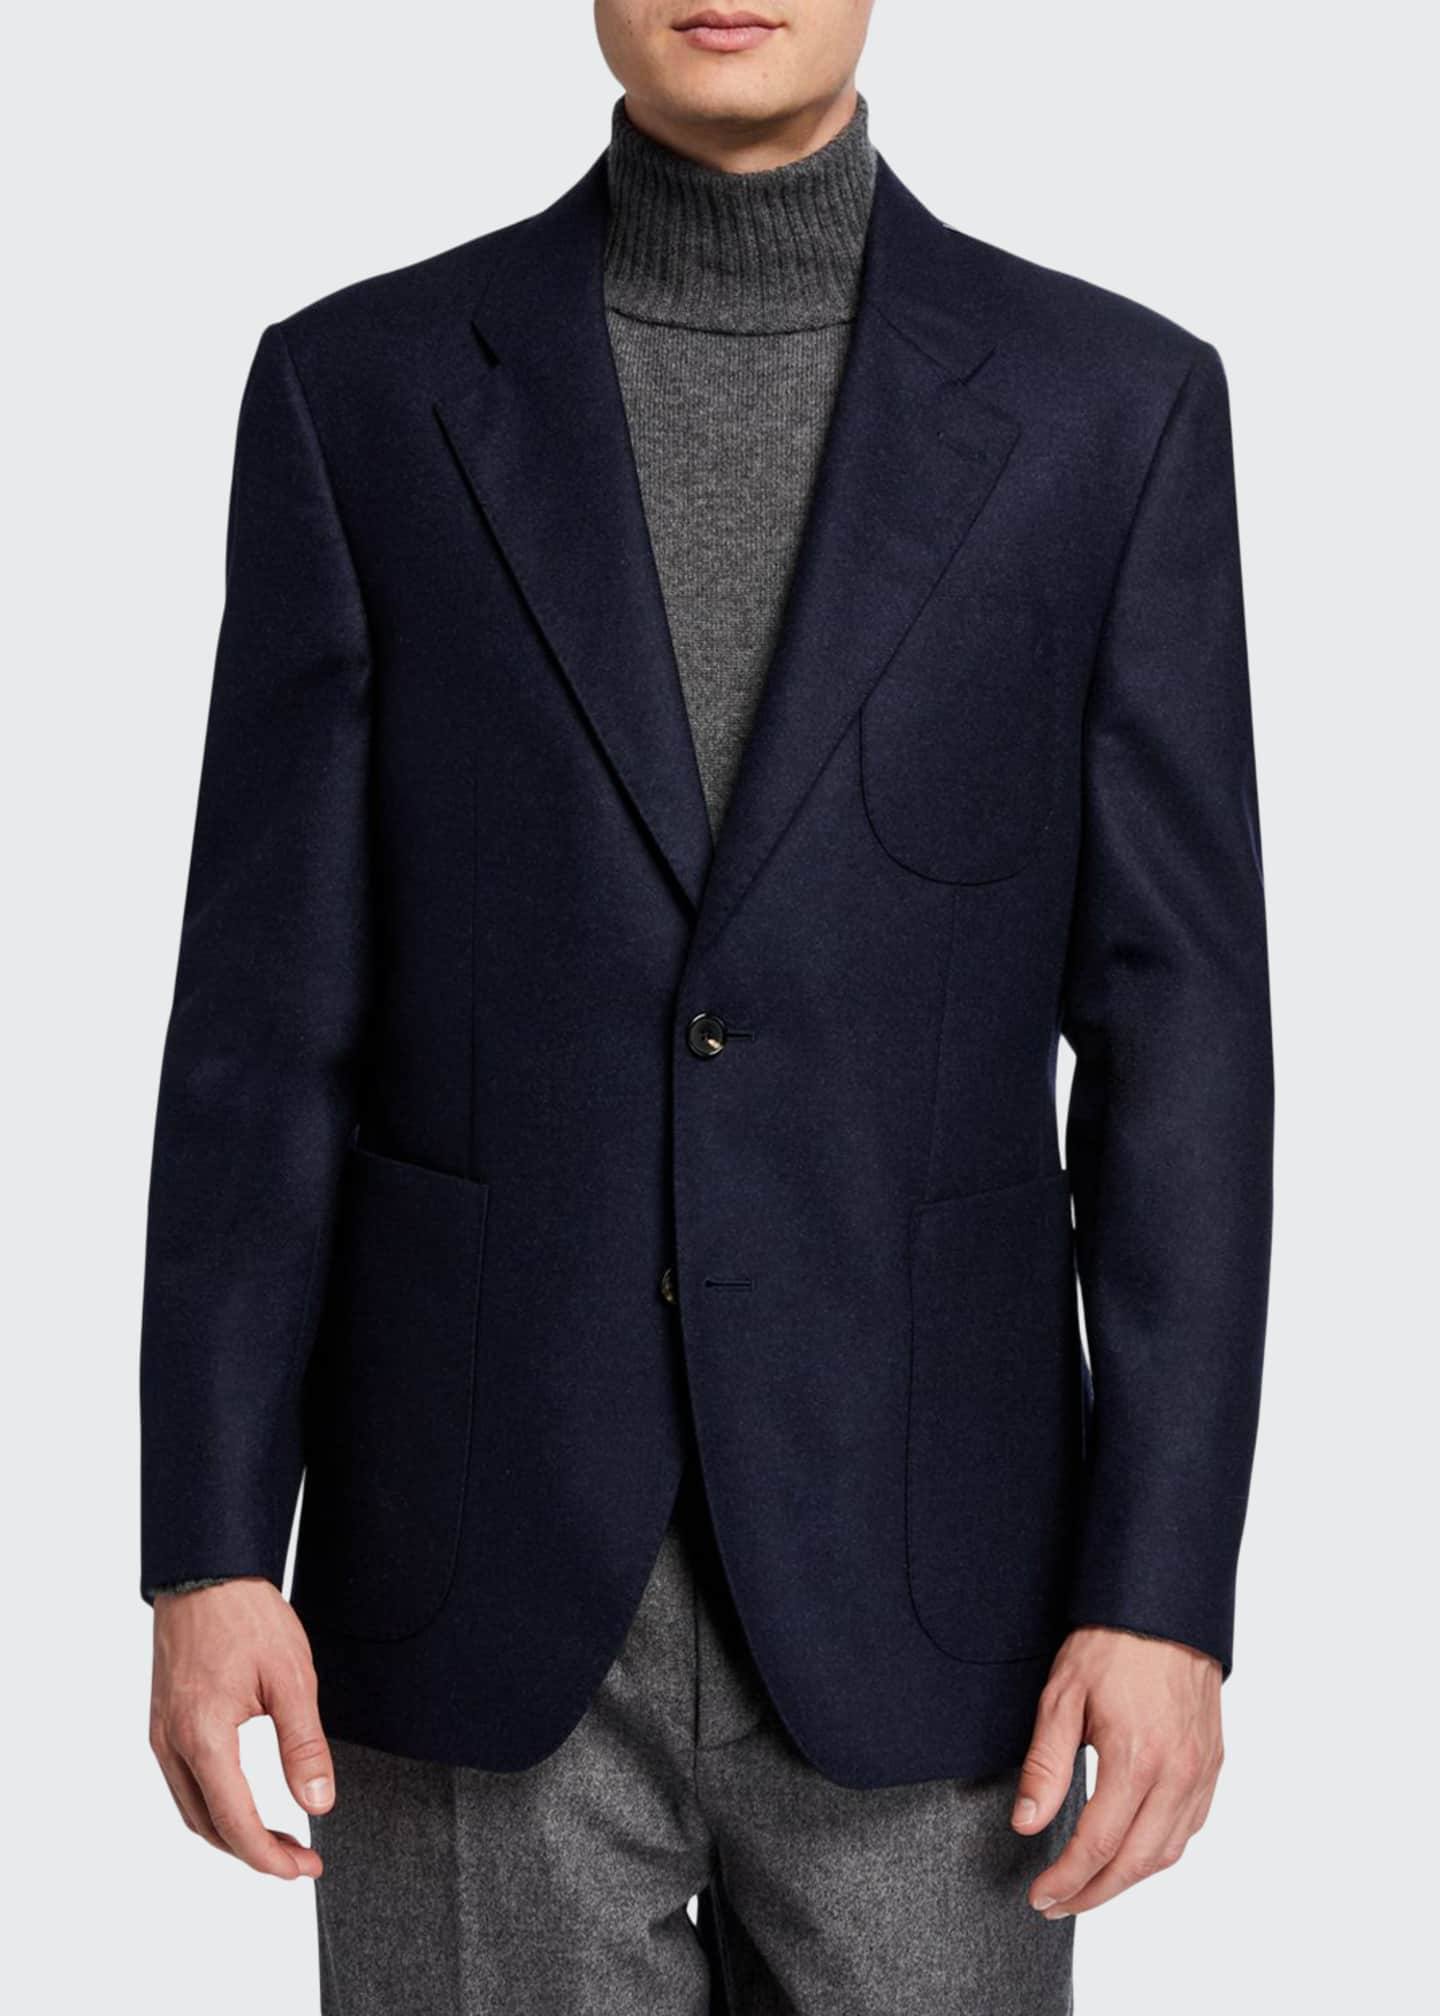 Image 1 of 3: Men's Havre Half-Lined Two-Button Jacket